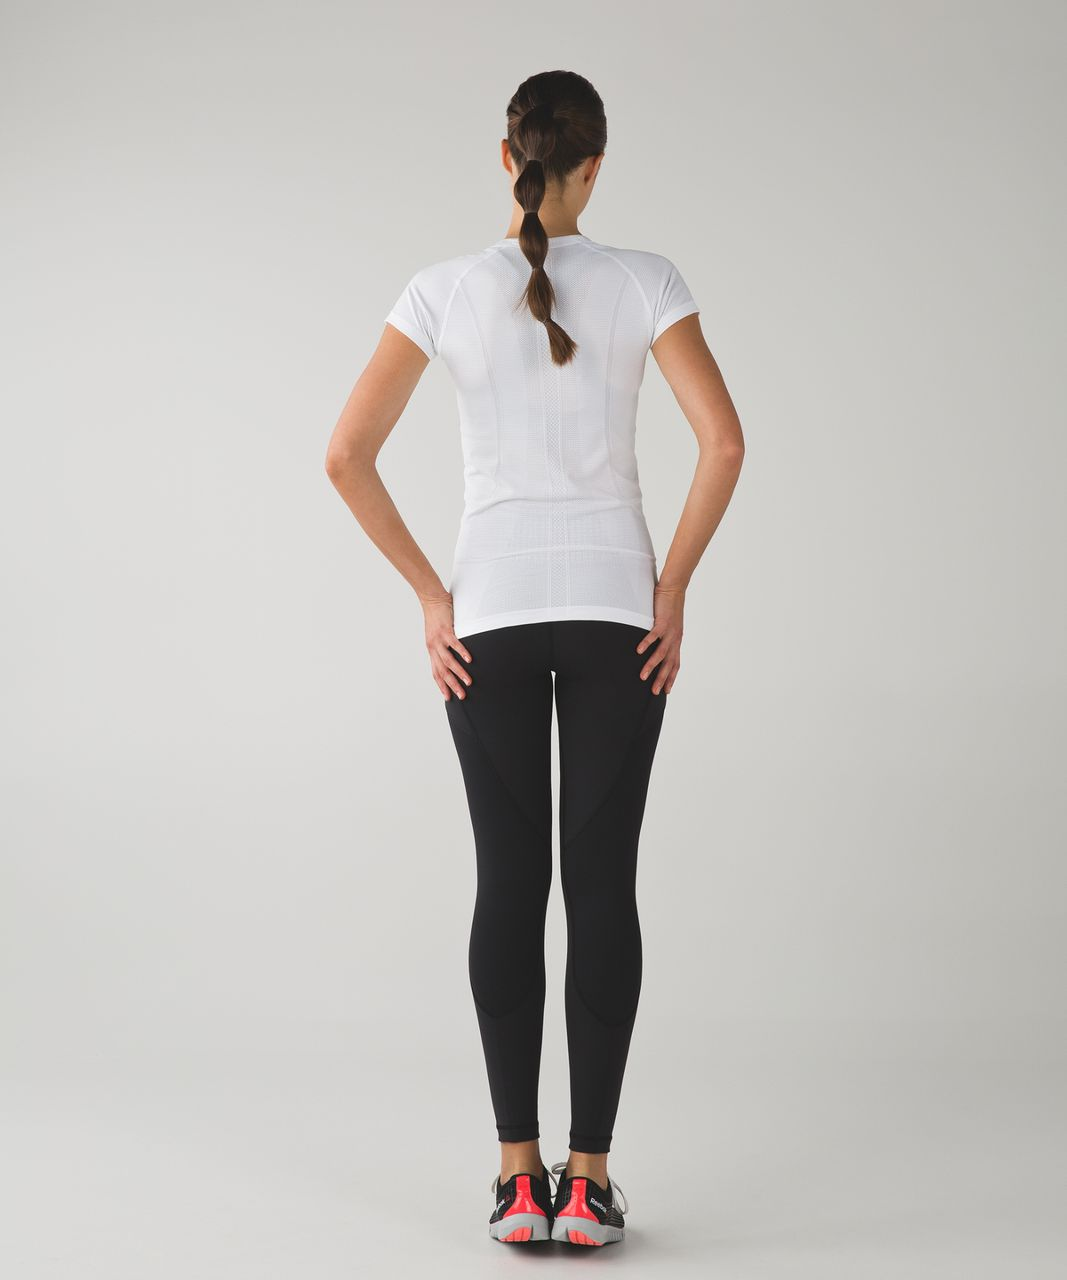 Lululemon All The Right Places Pant - Black / Cosmic Dot White Multi